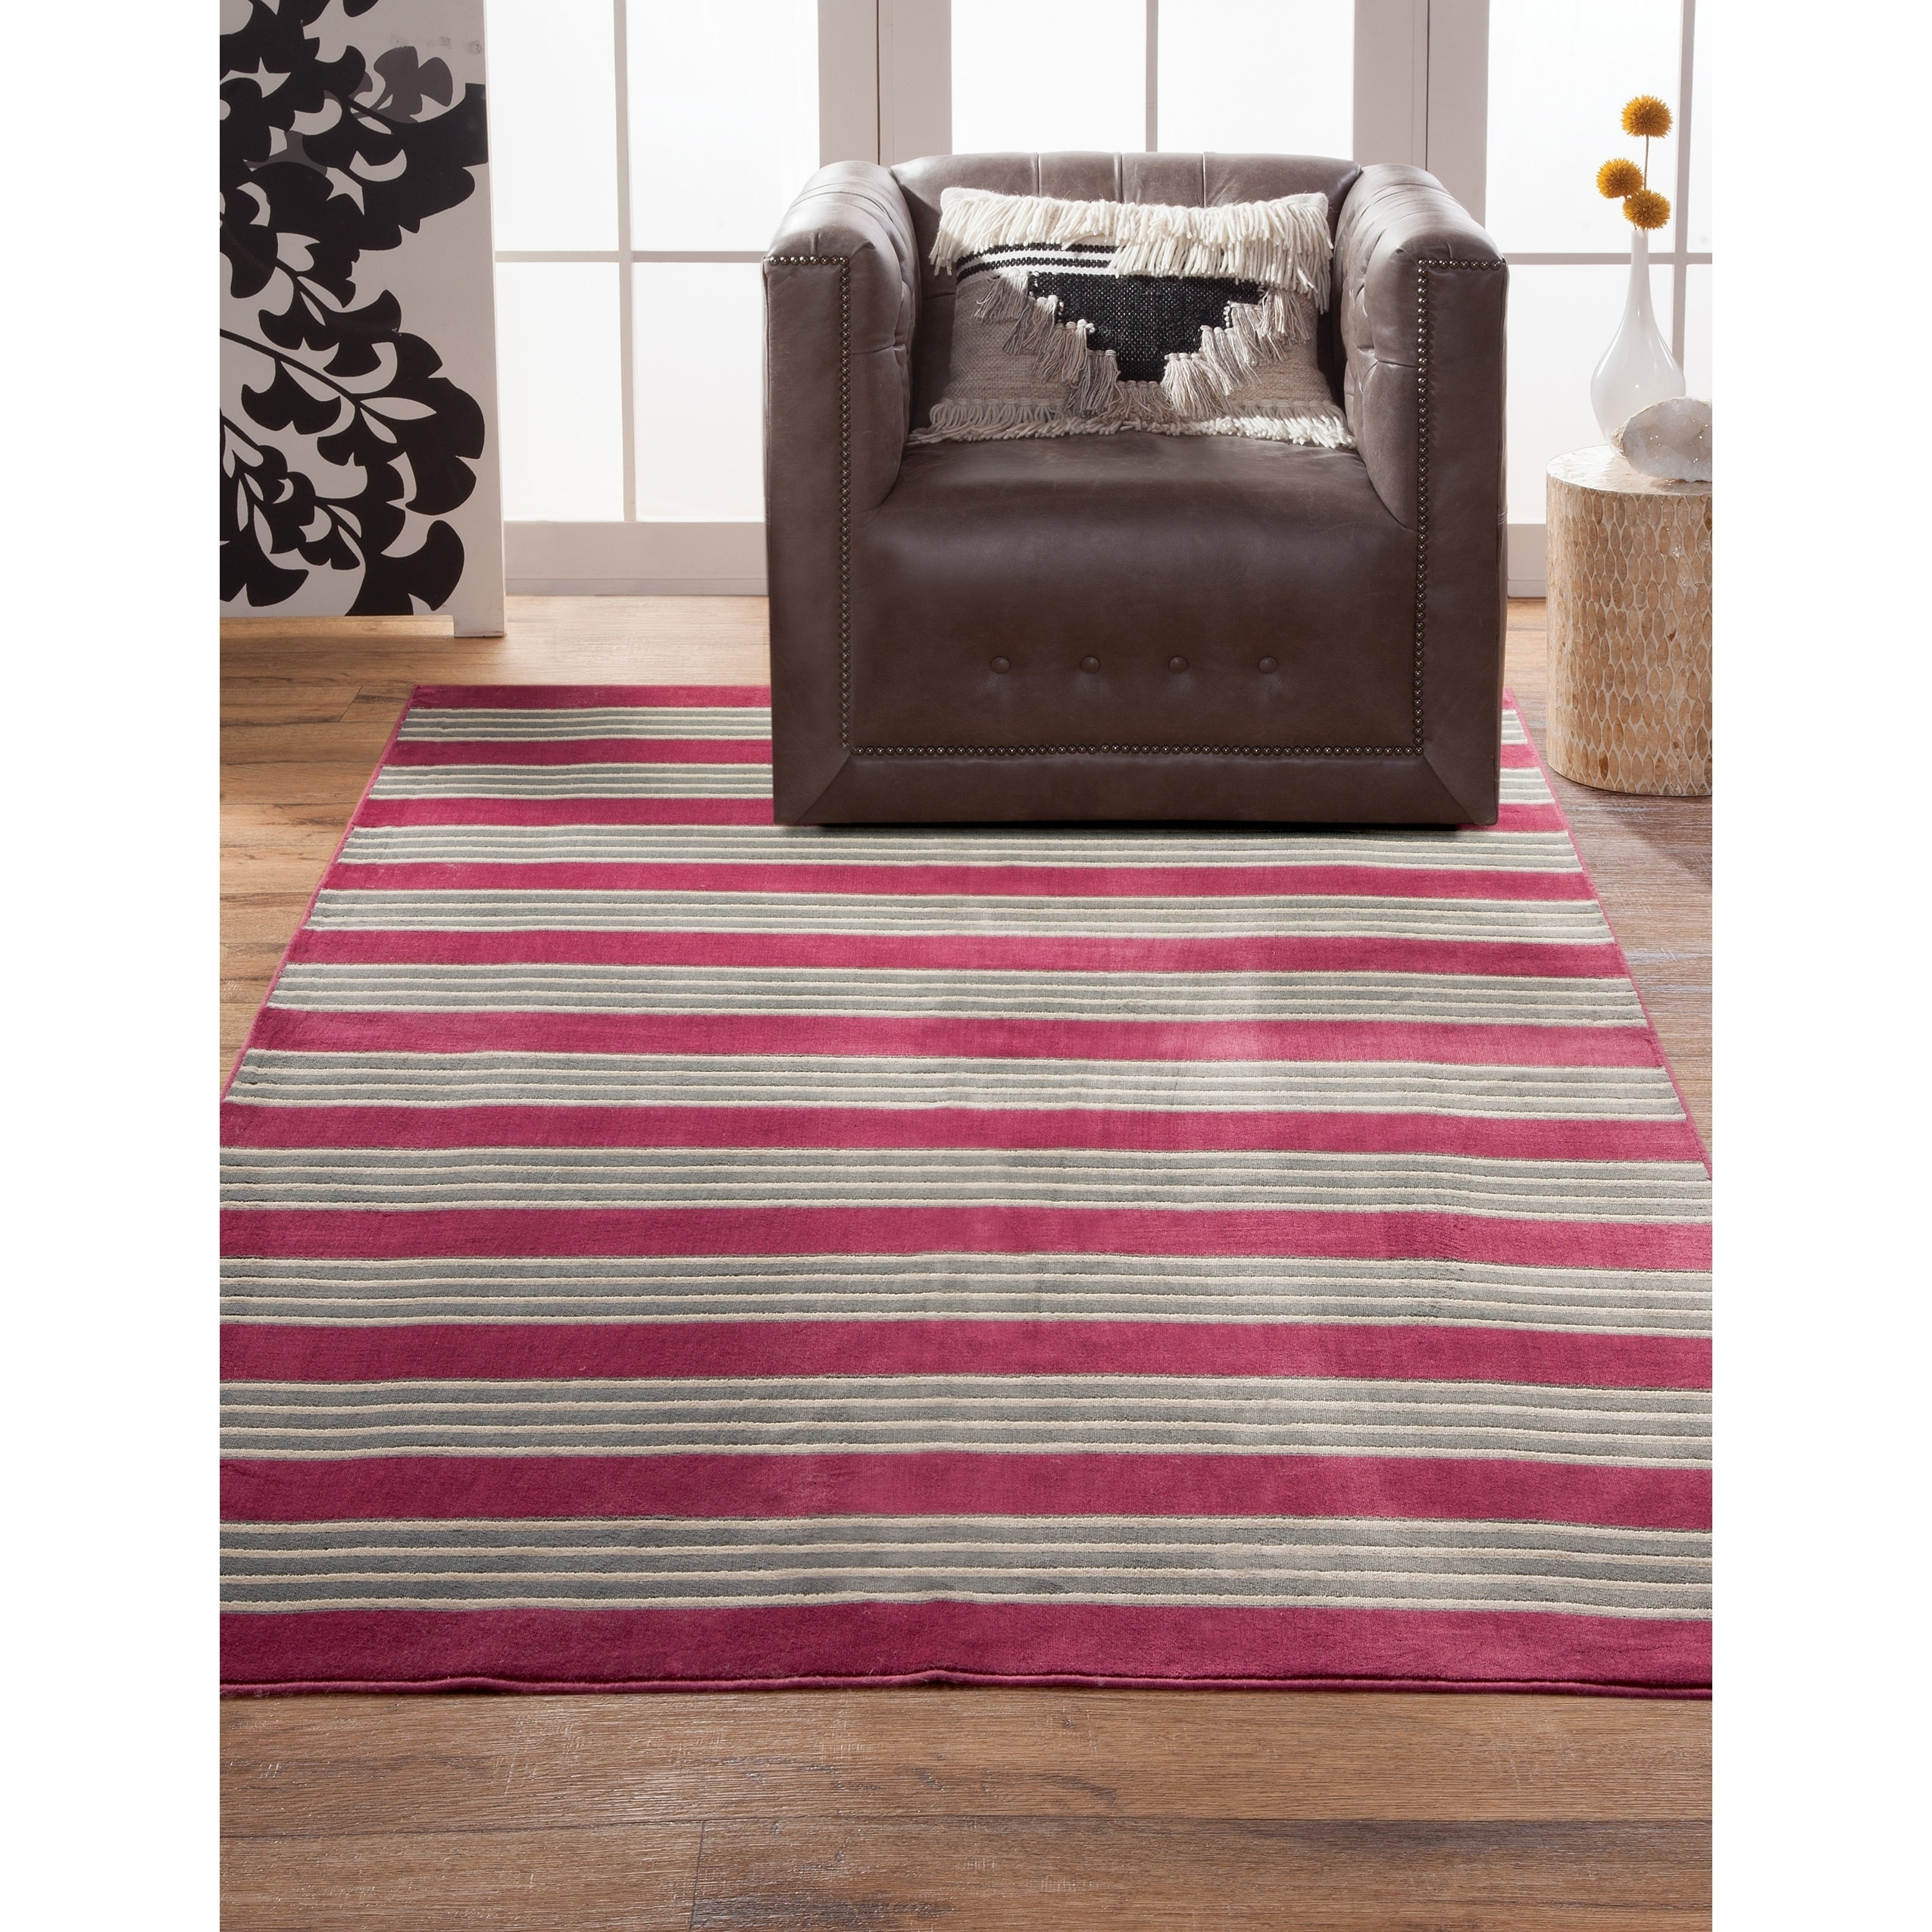 Greyson Living  Spencer Raspberry Viscose Area Rug (5'3 x 7'6) - 5'3 x 7'6